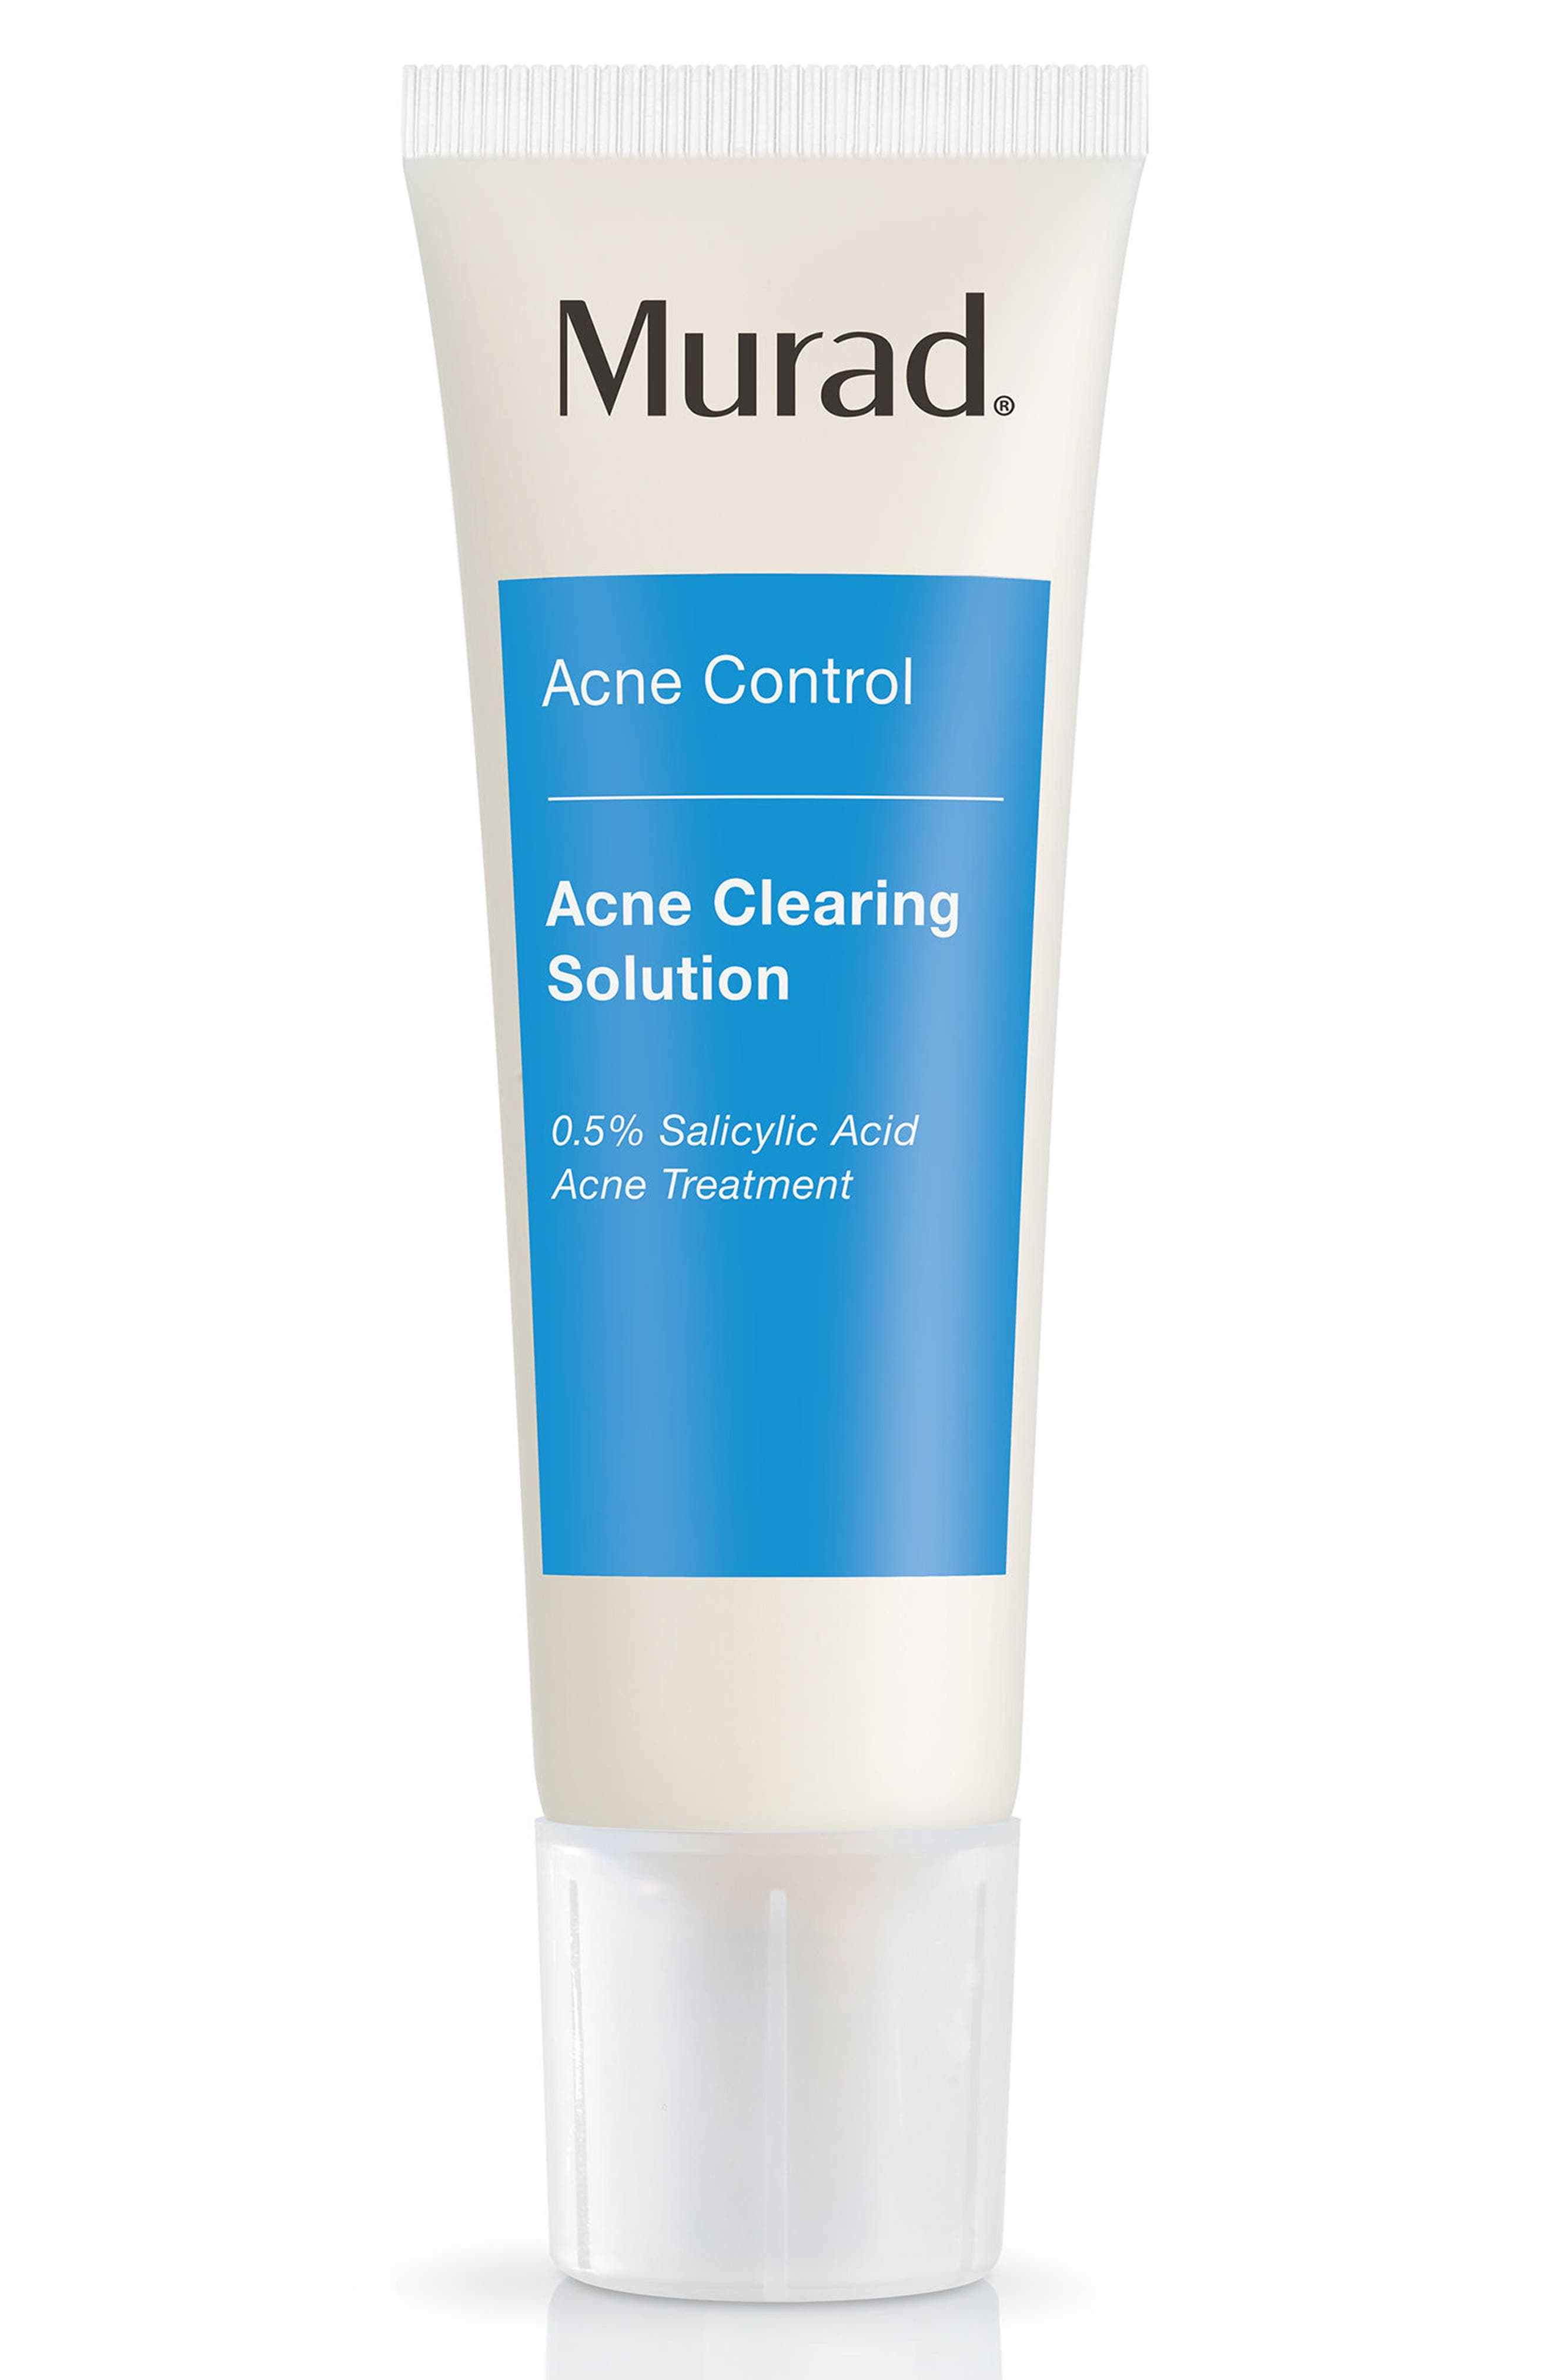 Murad® Acne Clearing Solution